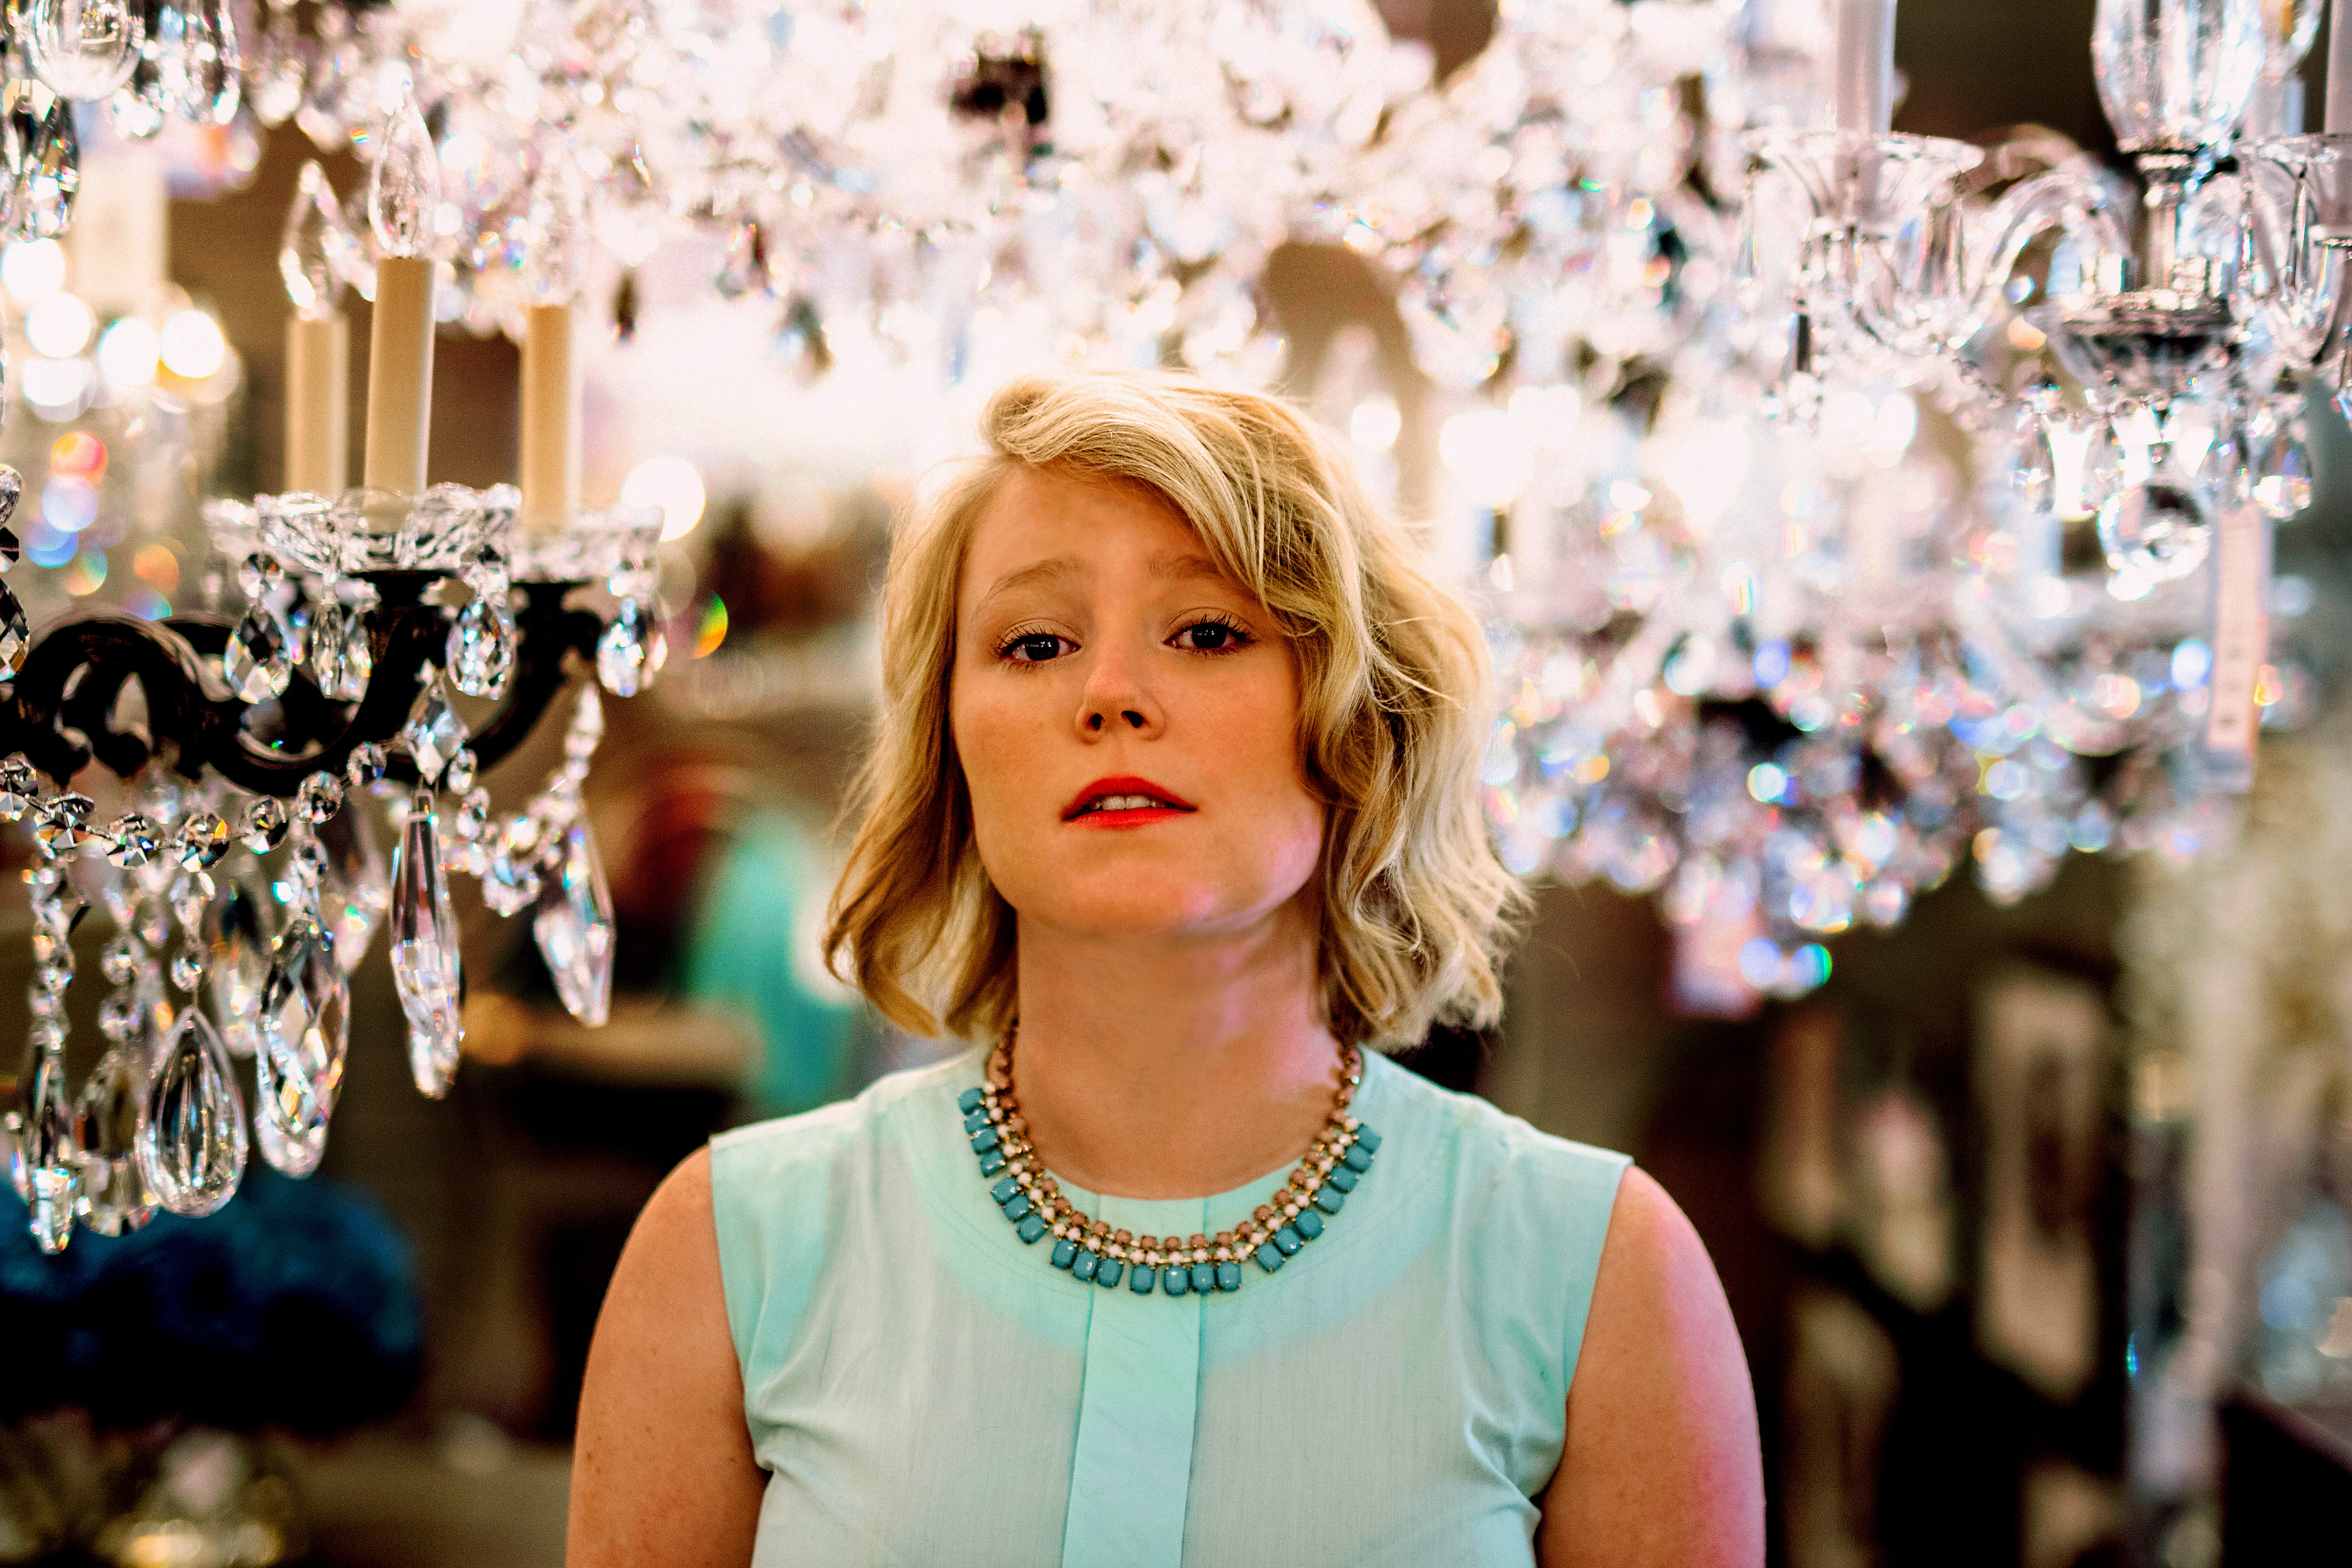 woman in teal sleeveless top standing surrounded by glass chandelier